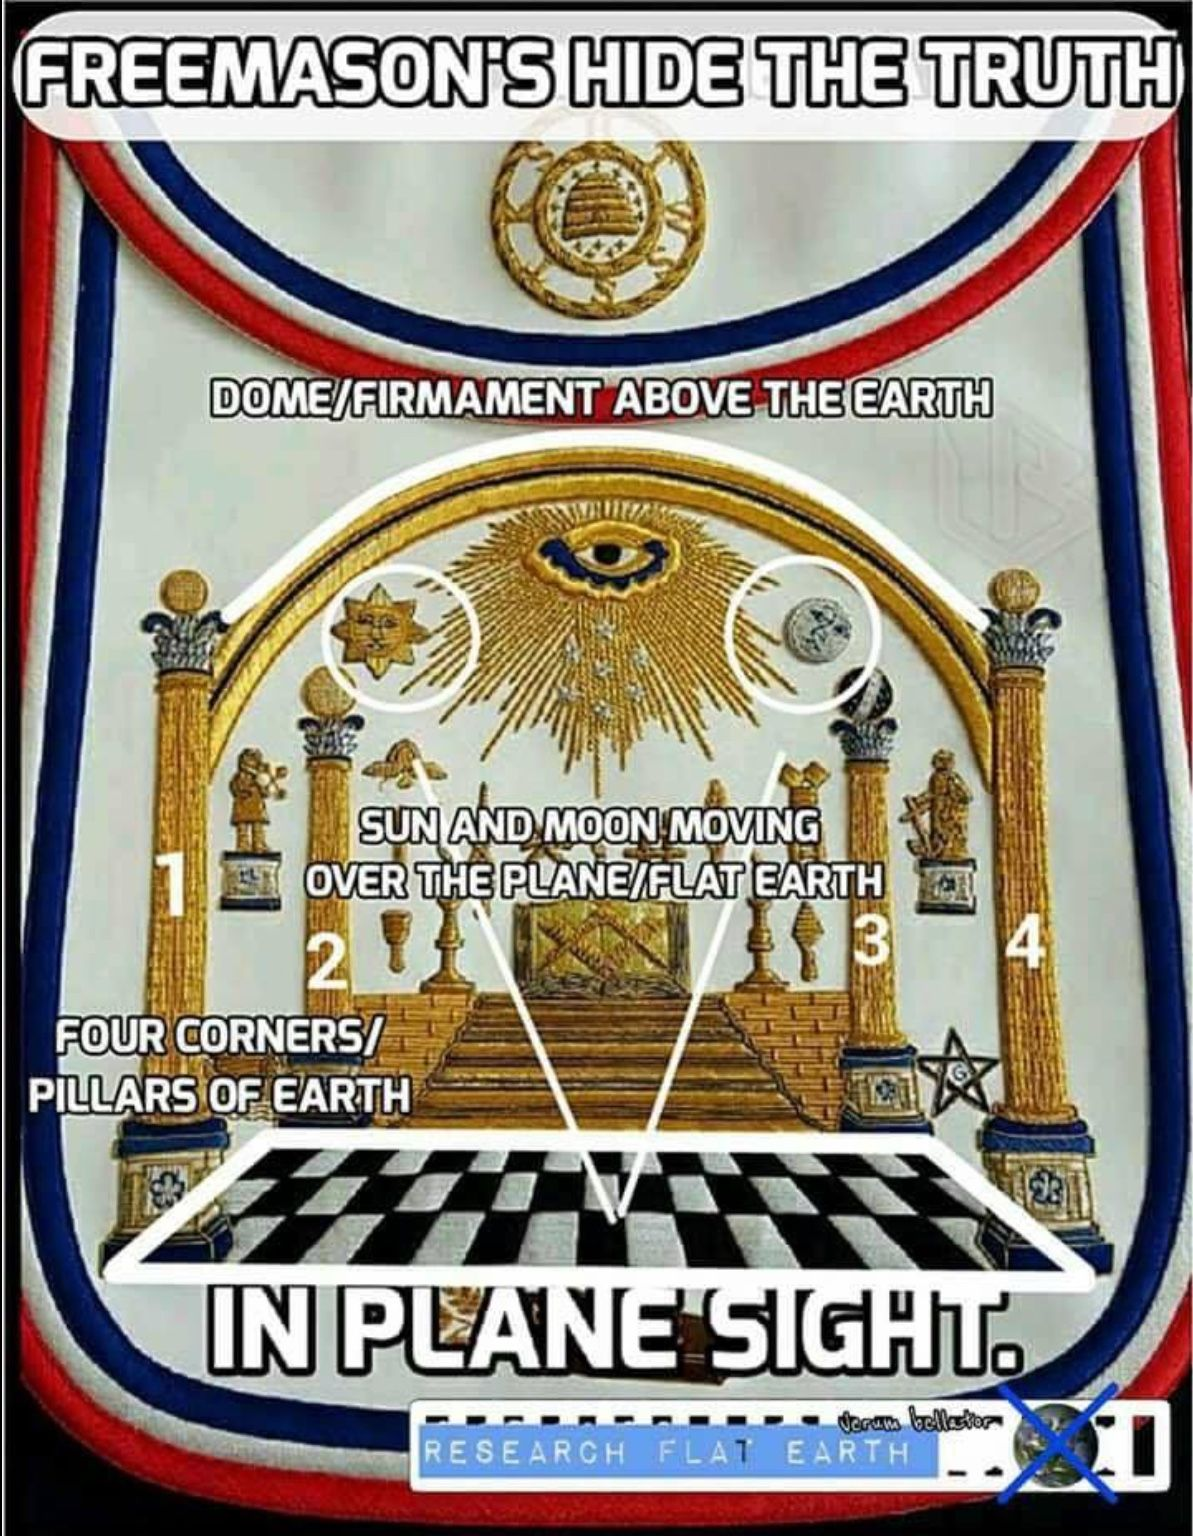 Freemasons Rule Flat Earth - Their History And Plans For ... |Flat Earth Freemasons Know